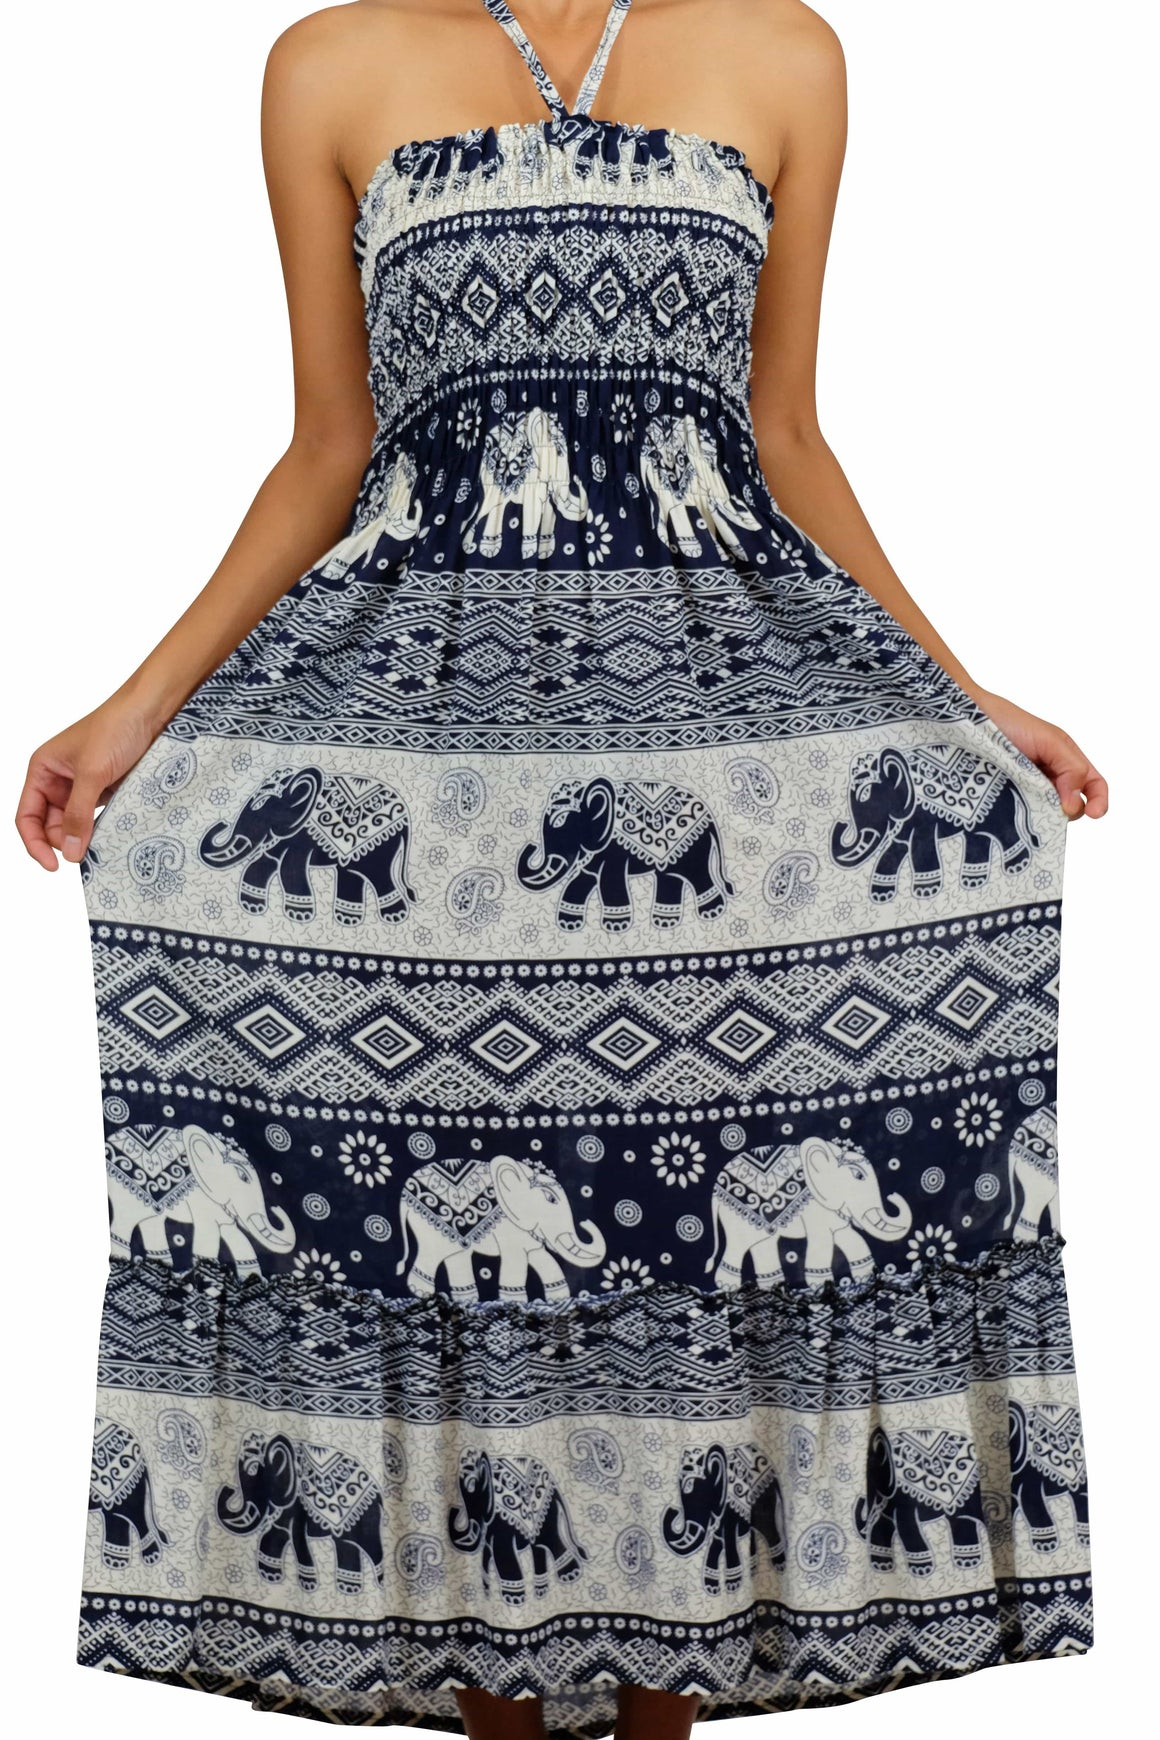 Elephant Shirt Store Dress DokPhikul Halter Elephant Dress Black